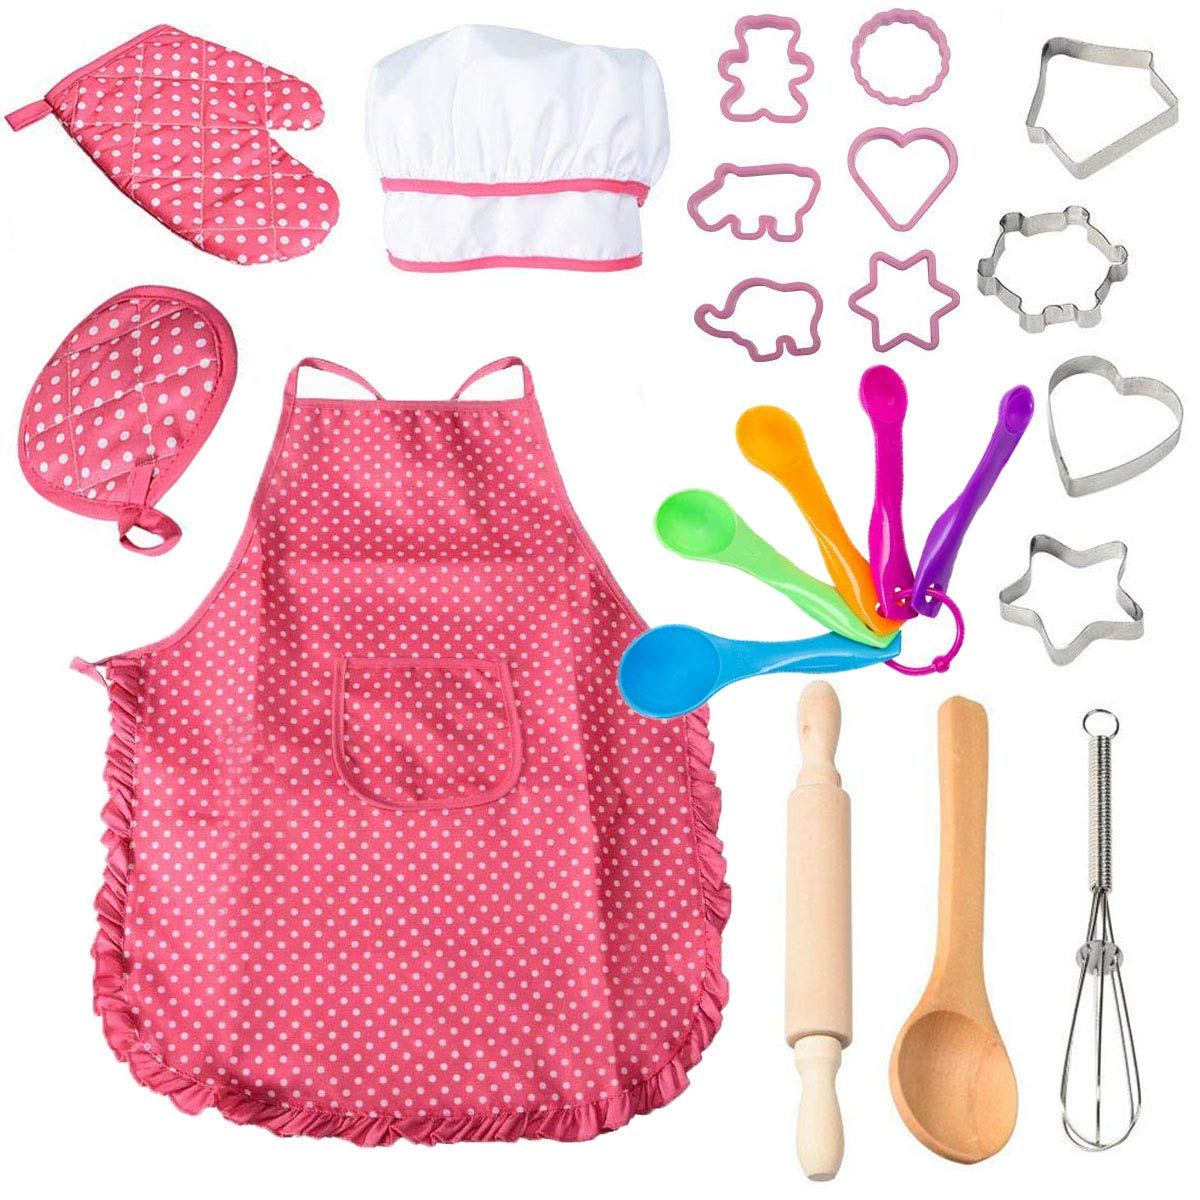 22 Pcs Kids Cooking and Baking Set - Includes Apron for Girls,Chef Hat,Oven Mitt and Other Cooking Utensils for Toddler Chef Career Role Play,Girls Dress up Pretend Play Gift by Famoby